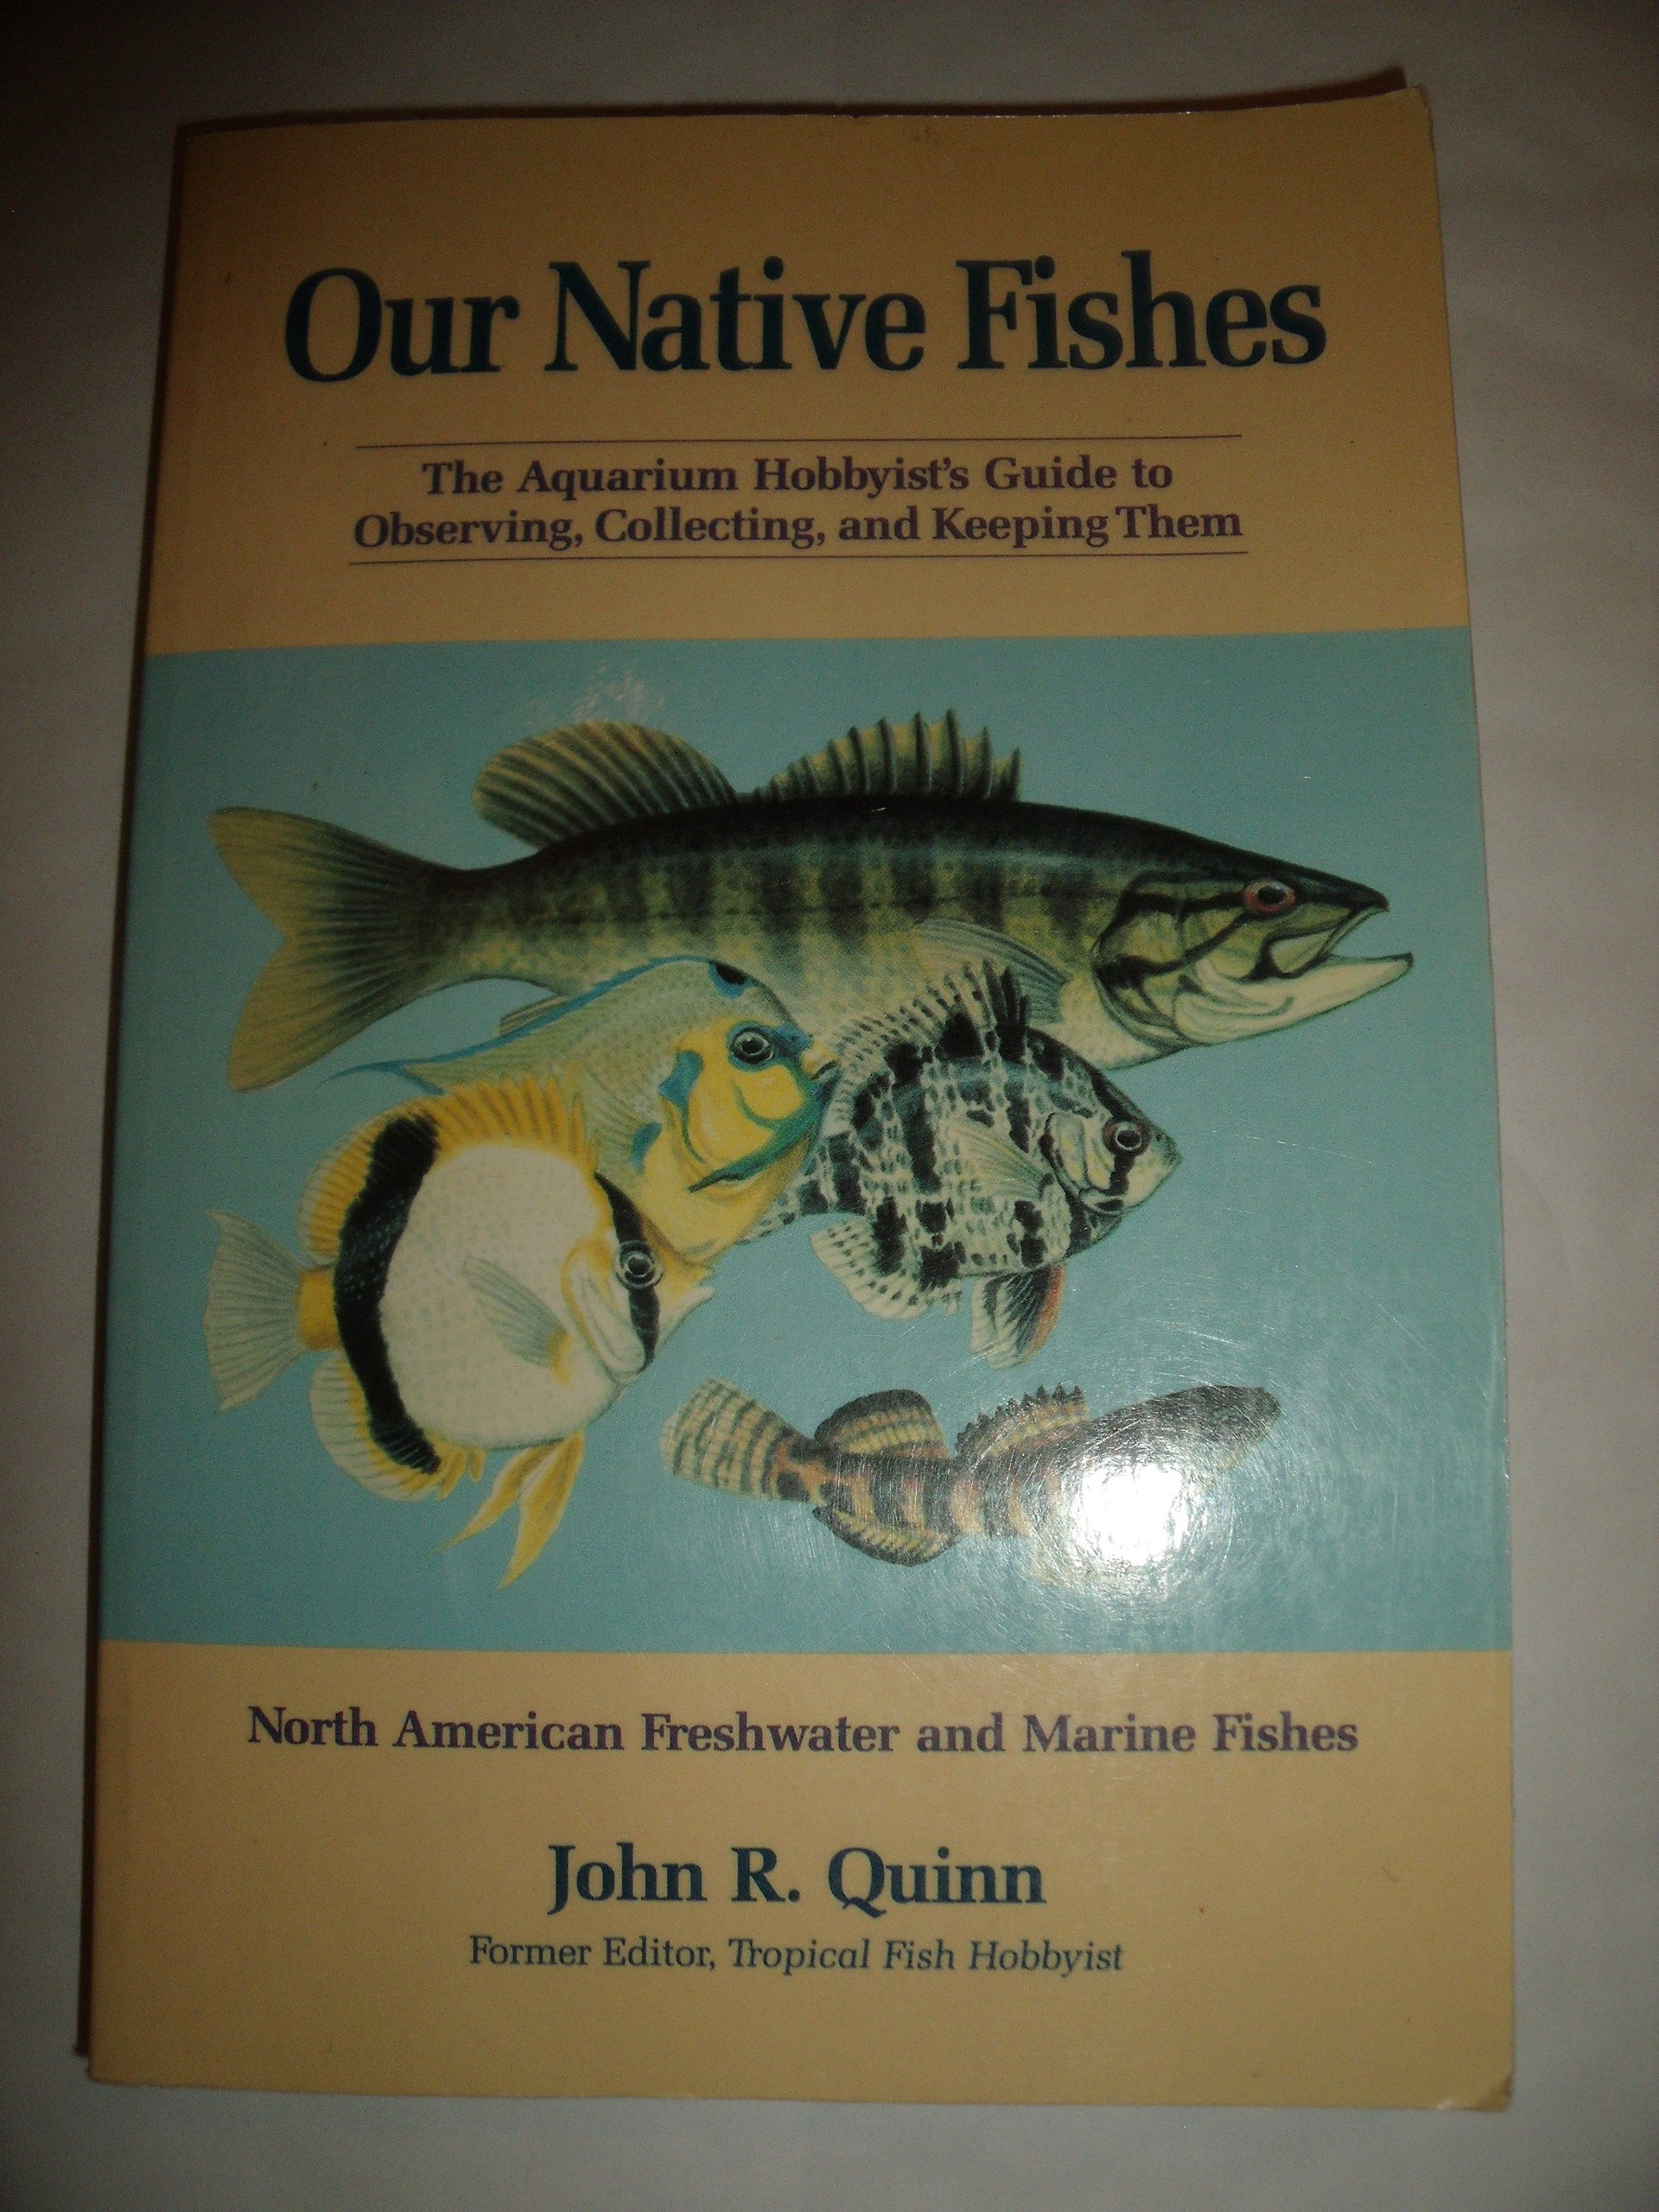 Freshwater fish hobby - Our Native Fishes The Aquarium Hobbyist S Guide To Observing Collecting And Keeping Them North American Freshwater And Marine Fishes John R Quinn